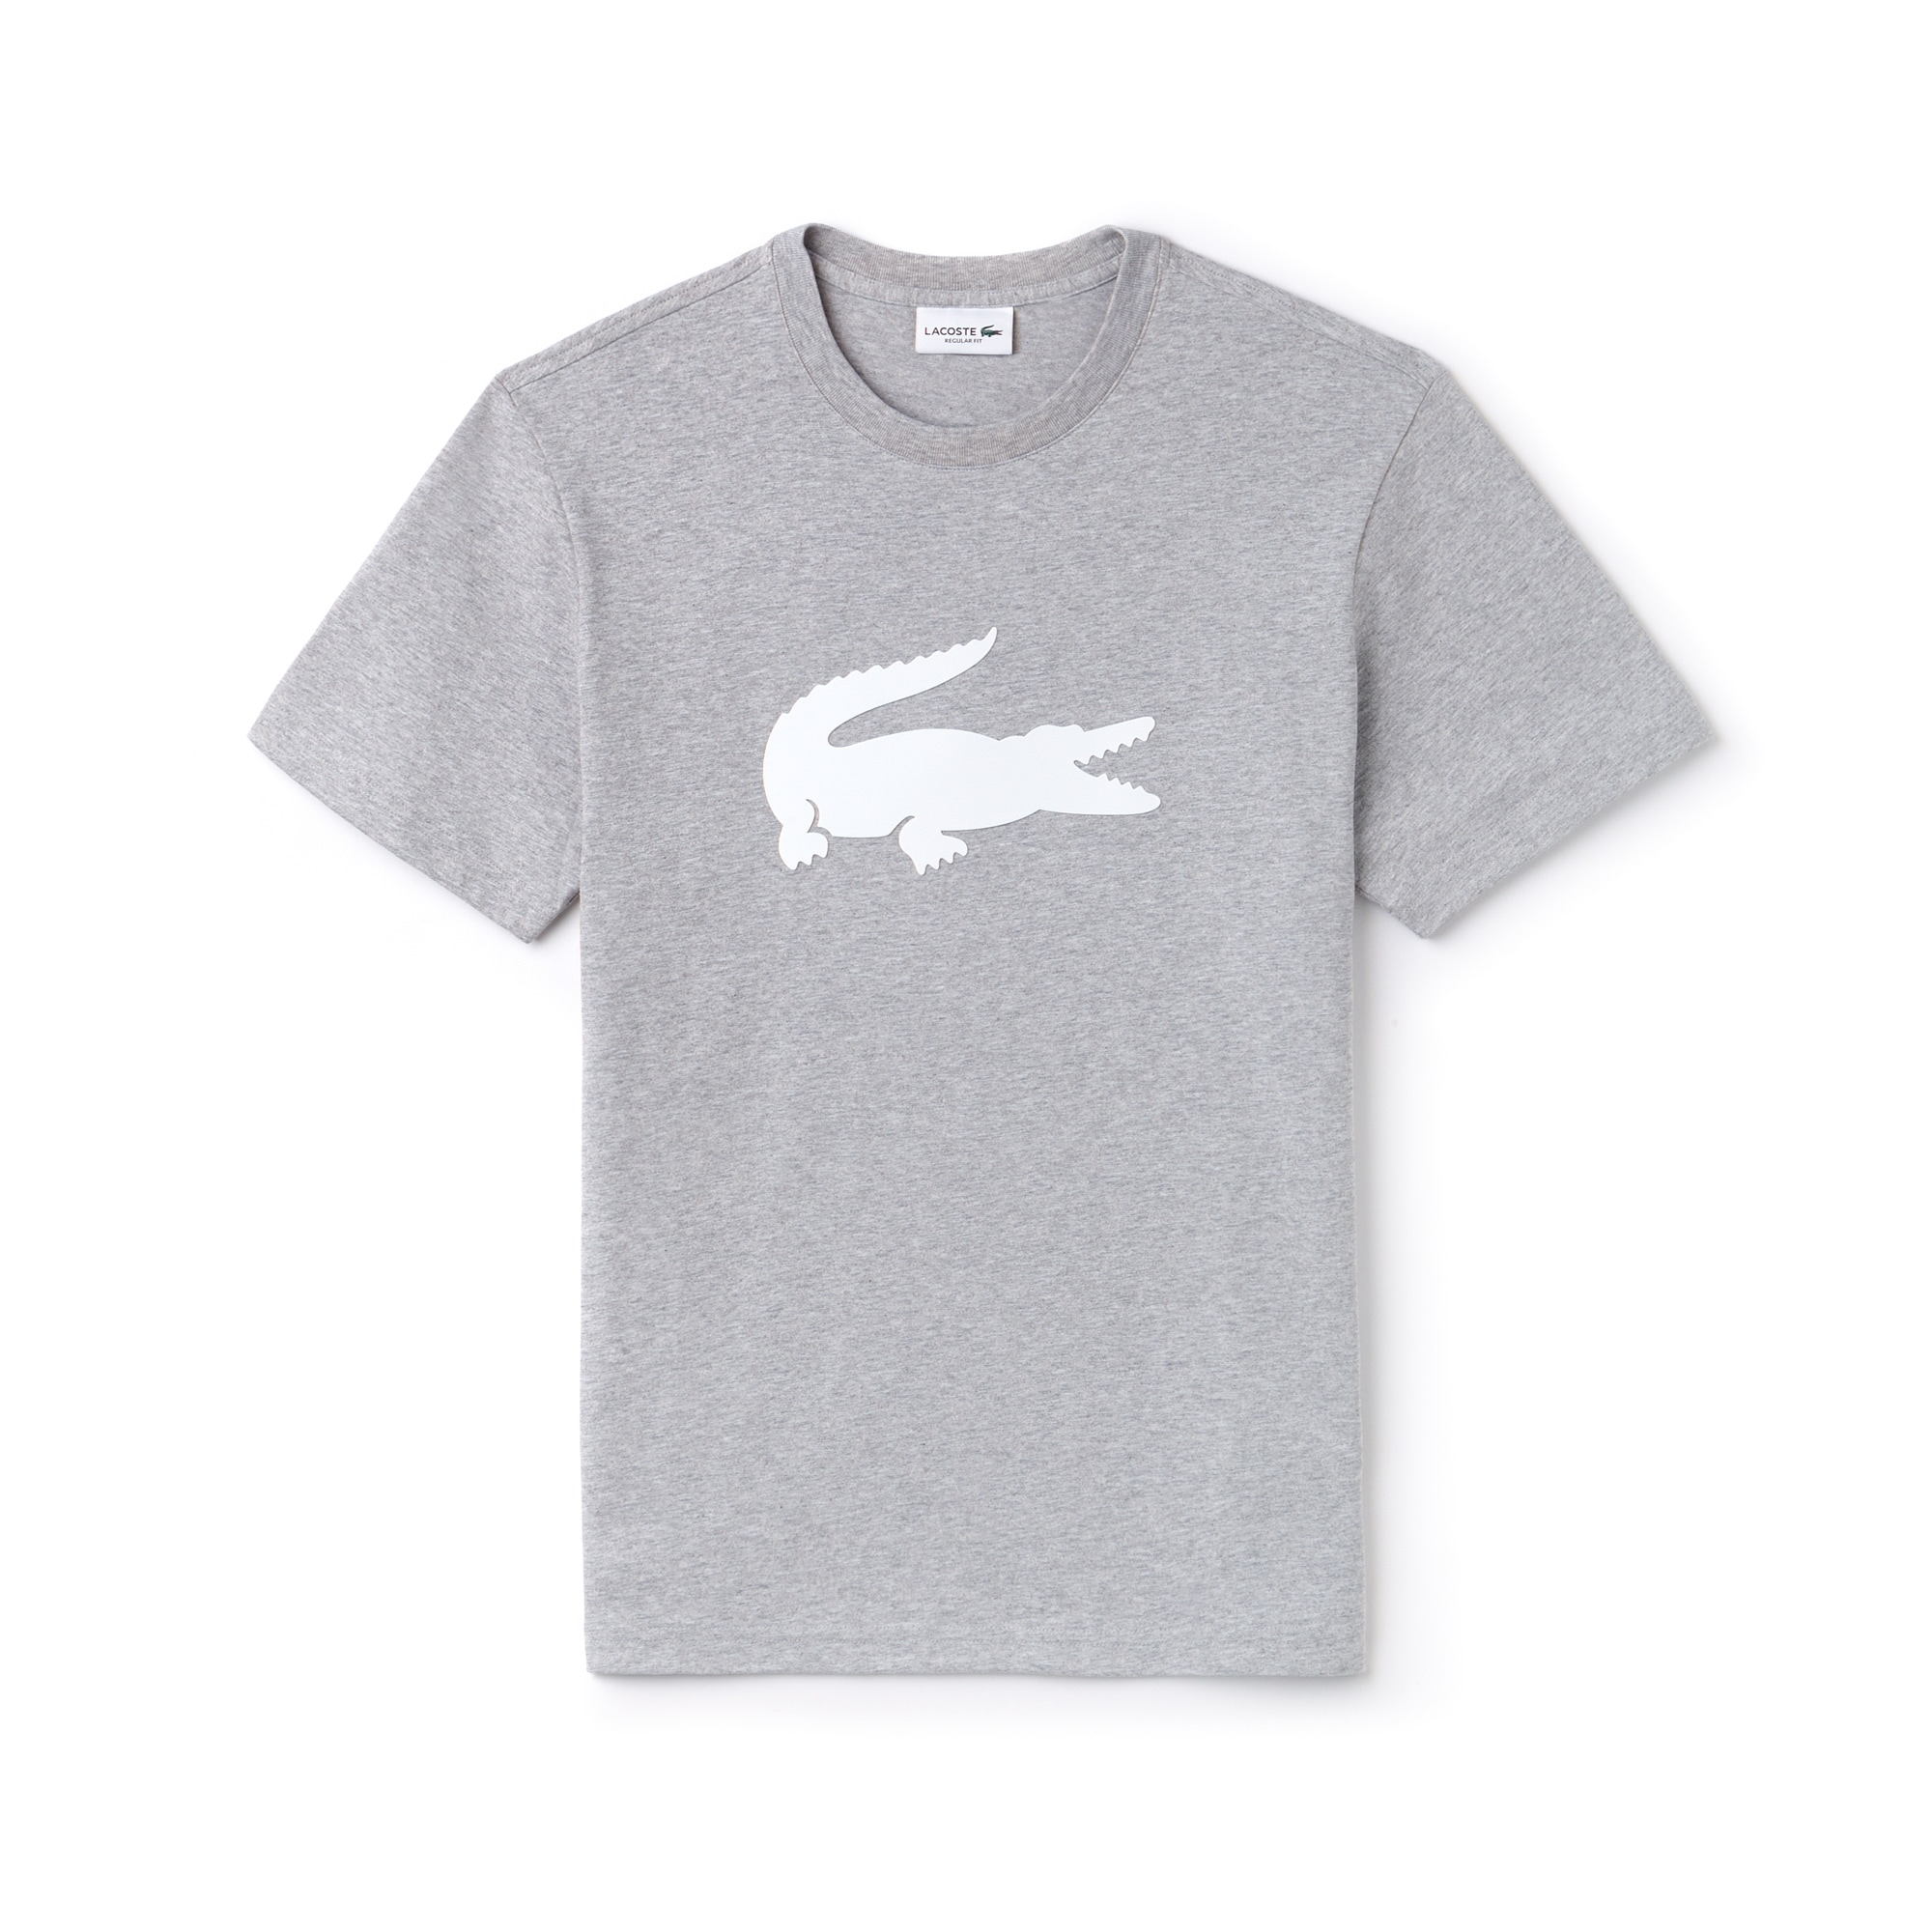 Men's Oversized Crocodile T-Shirt